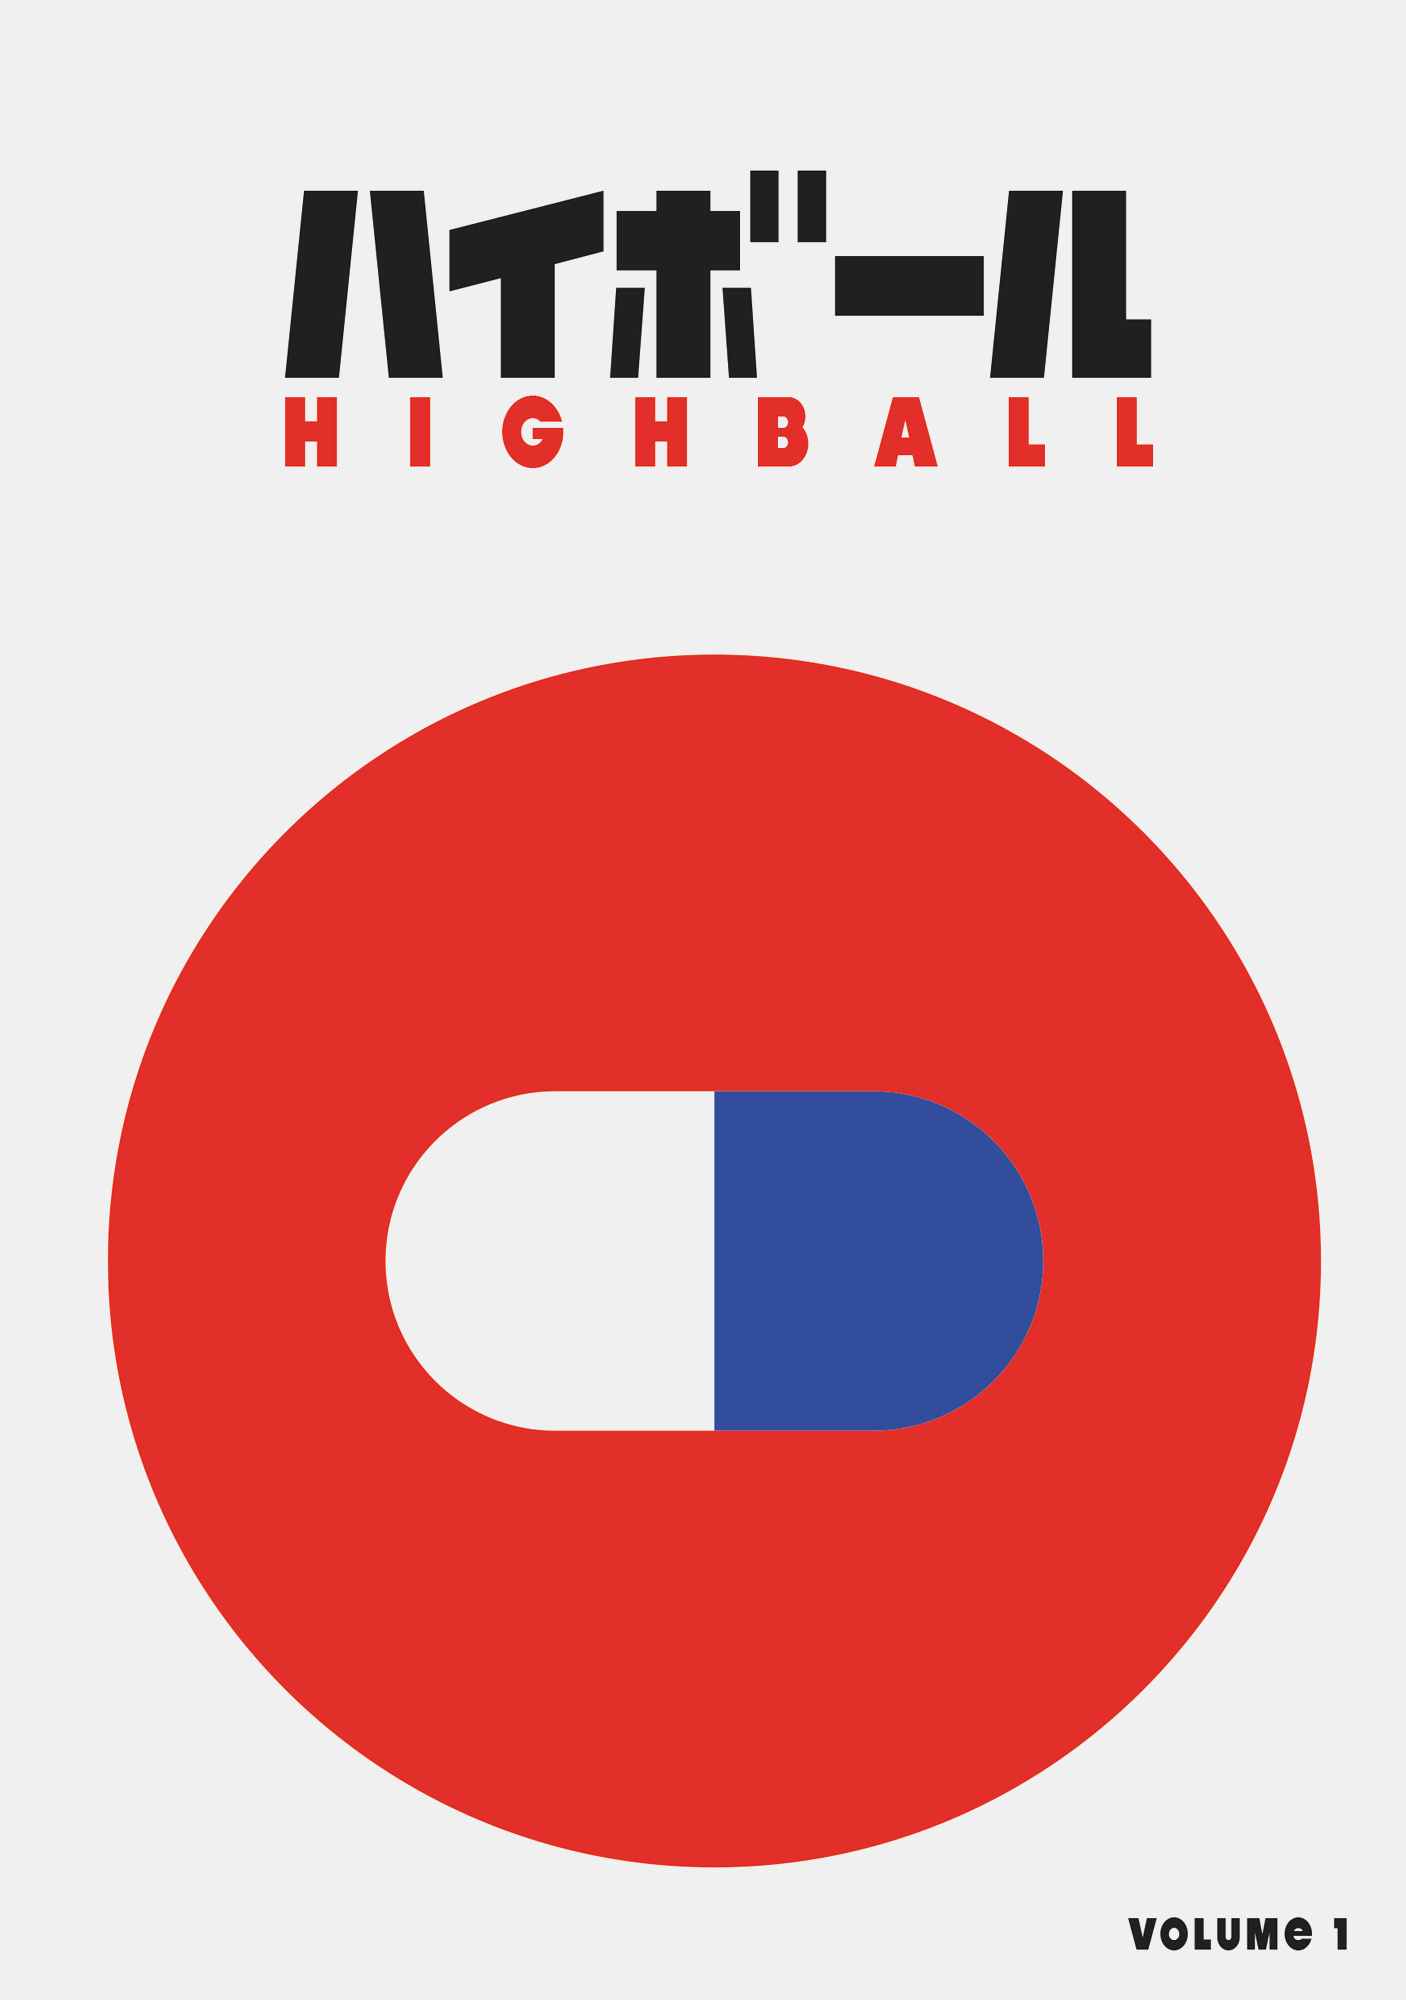 HIGHBALL ハイボール volume 1 by Aaron VIII & Joel Westworth